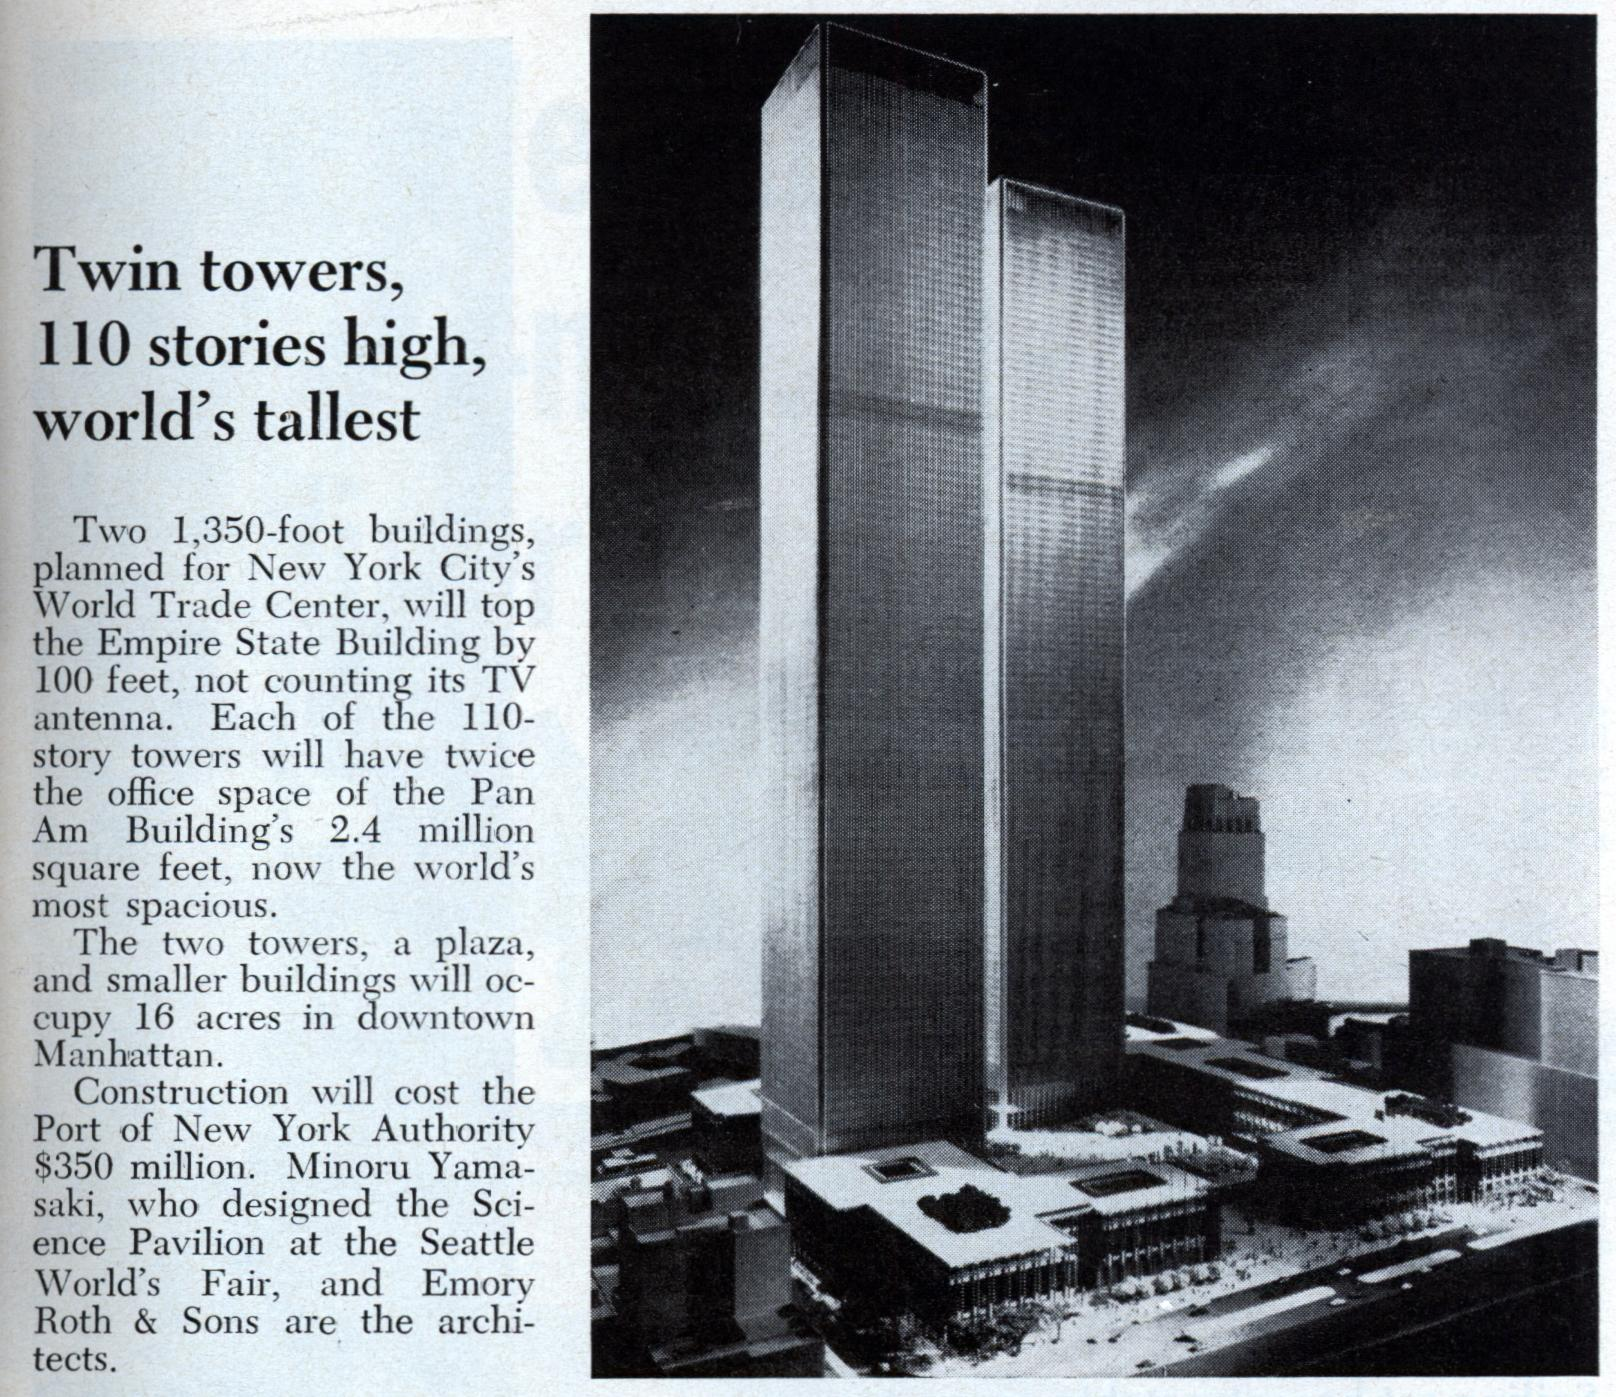 Pin on World Trade Center Twin Towers